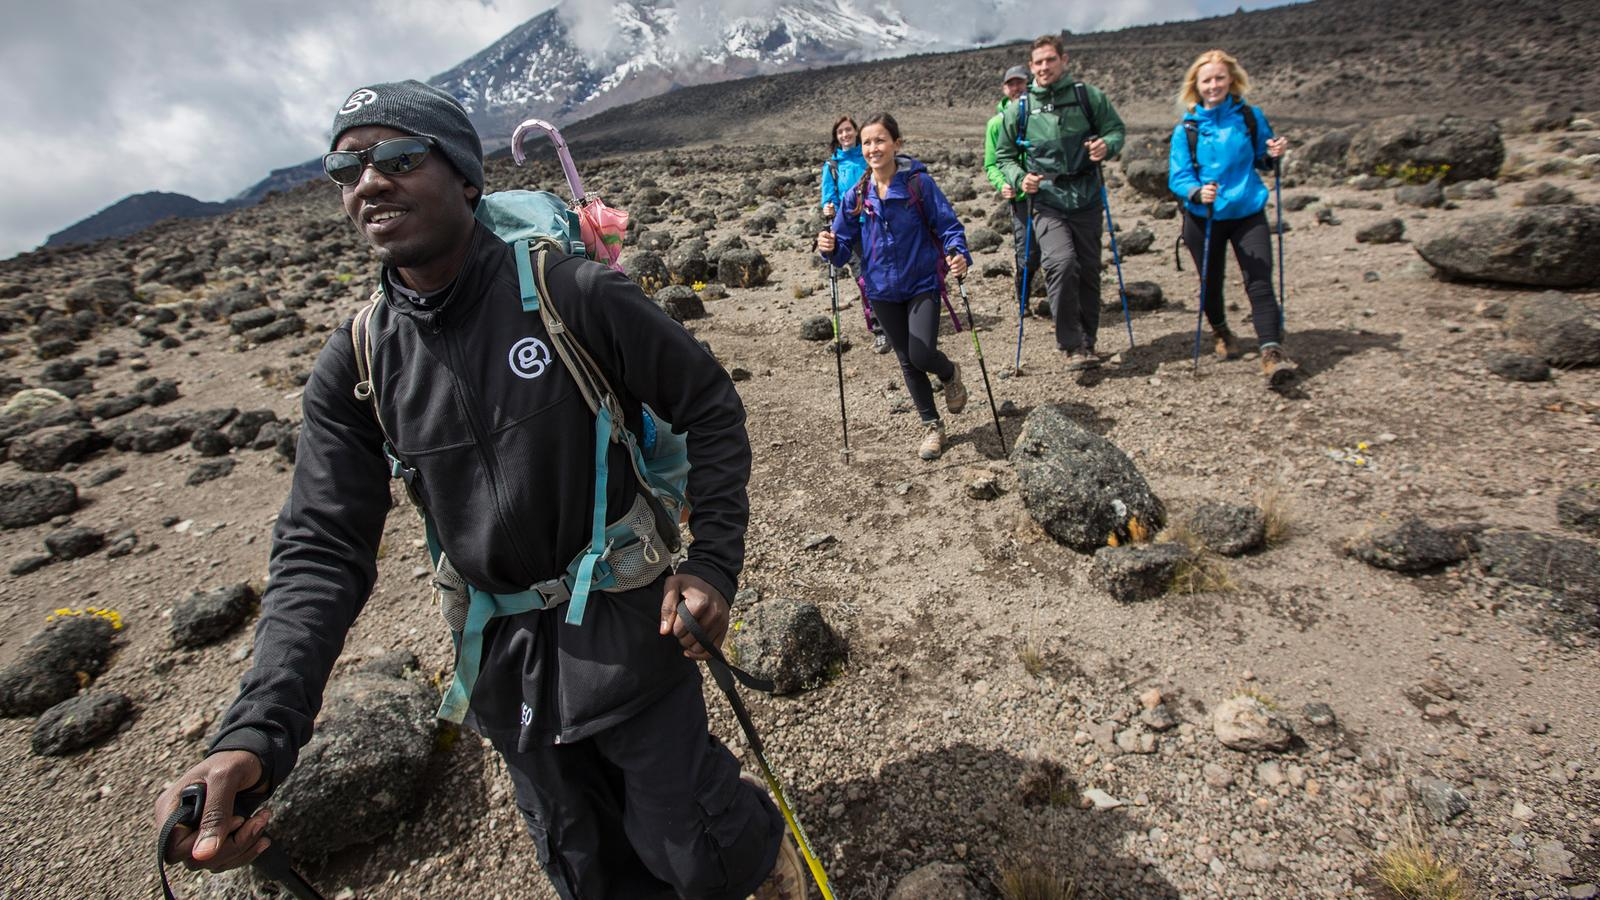 CEO and group hiking up the challenging but incredible Mt.Kilimanjaro in Tanzania